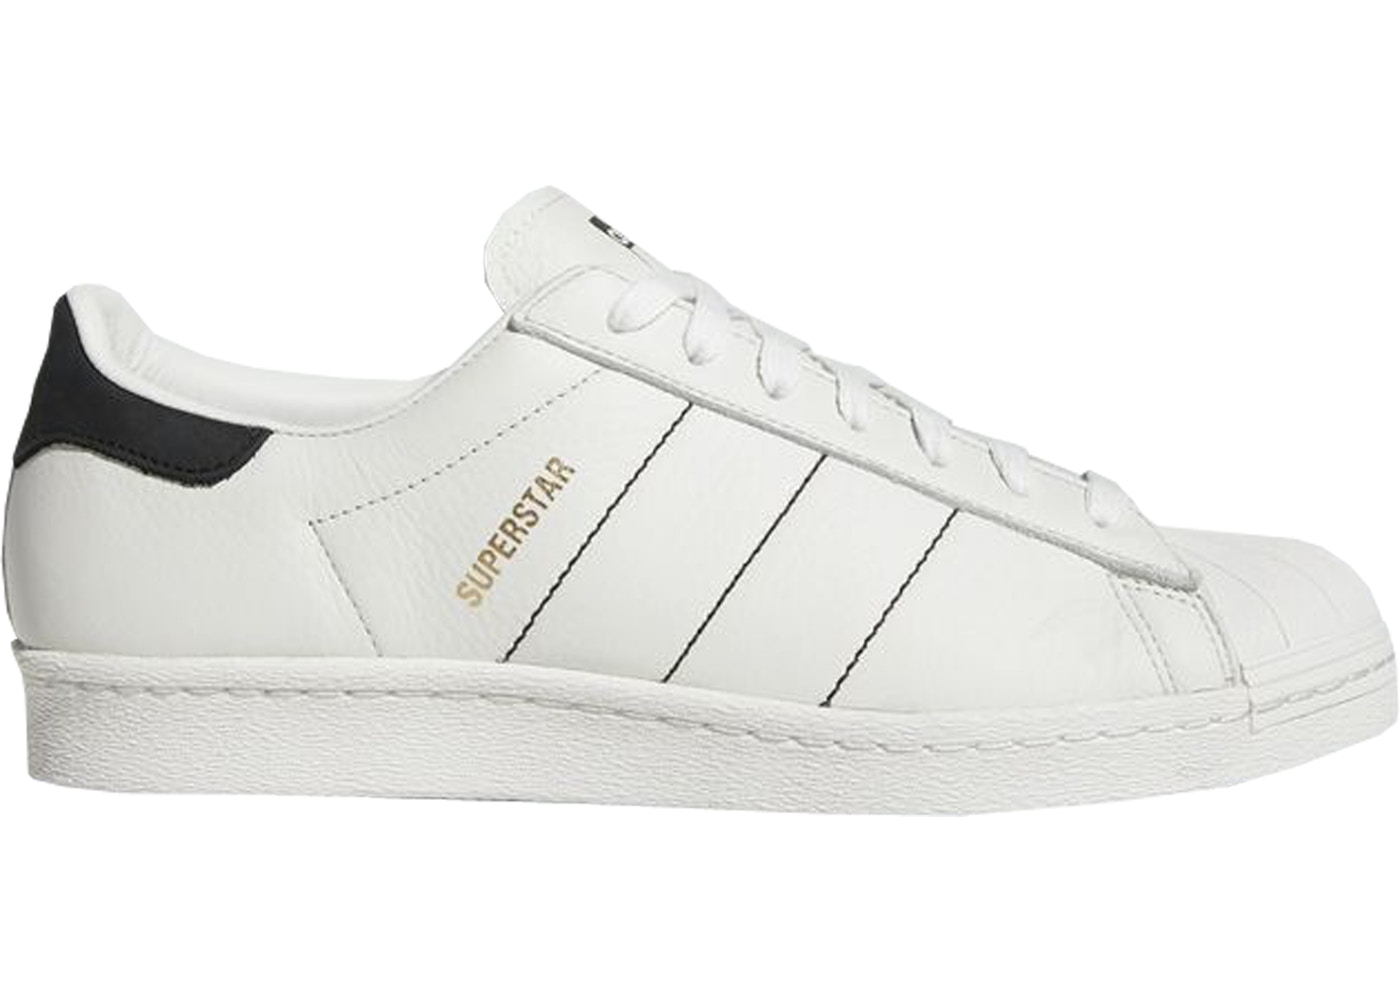 82f1e520 adidas Superstar Handcrafted Pack (Off White) - CQ2653